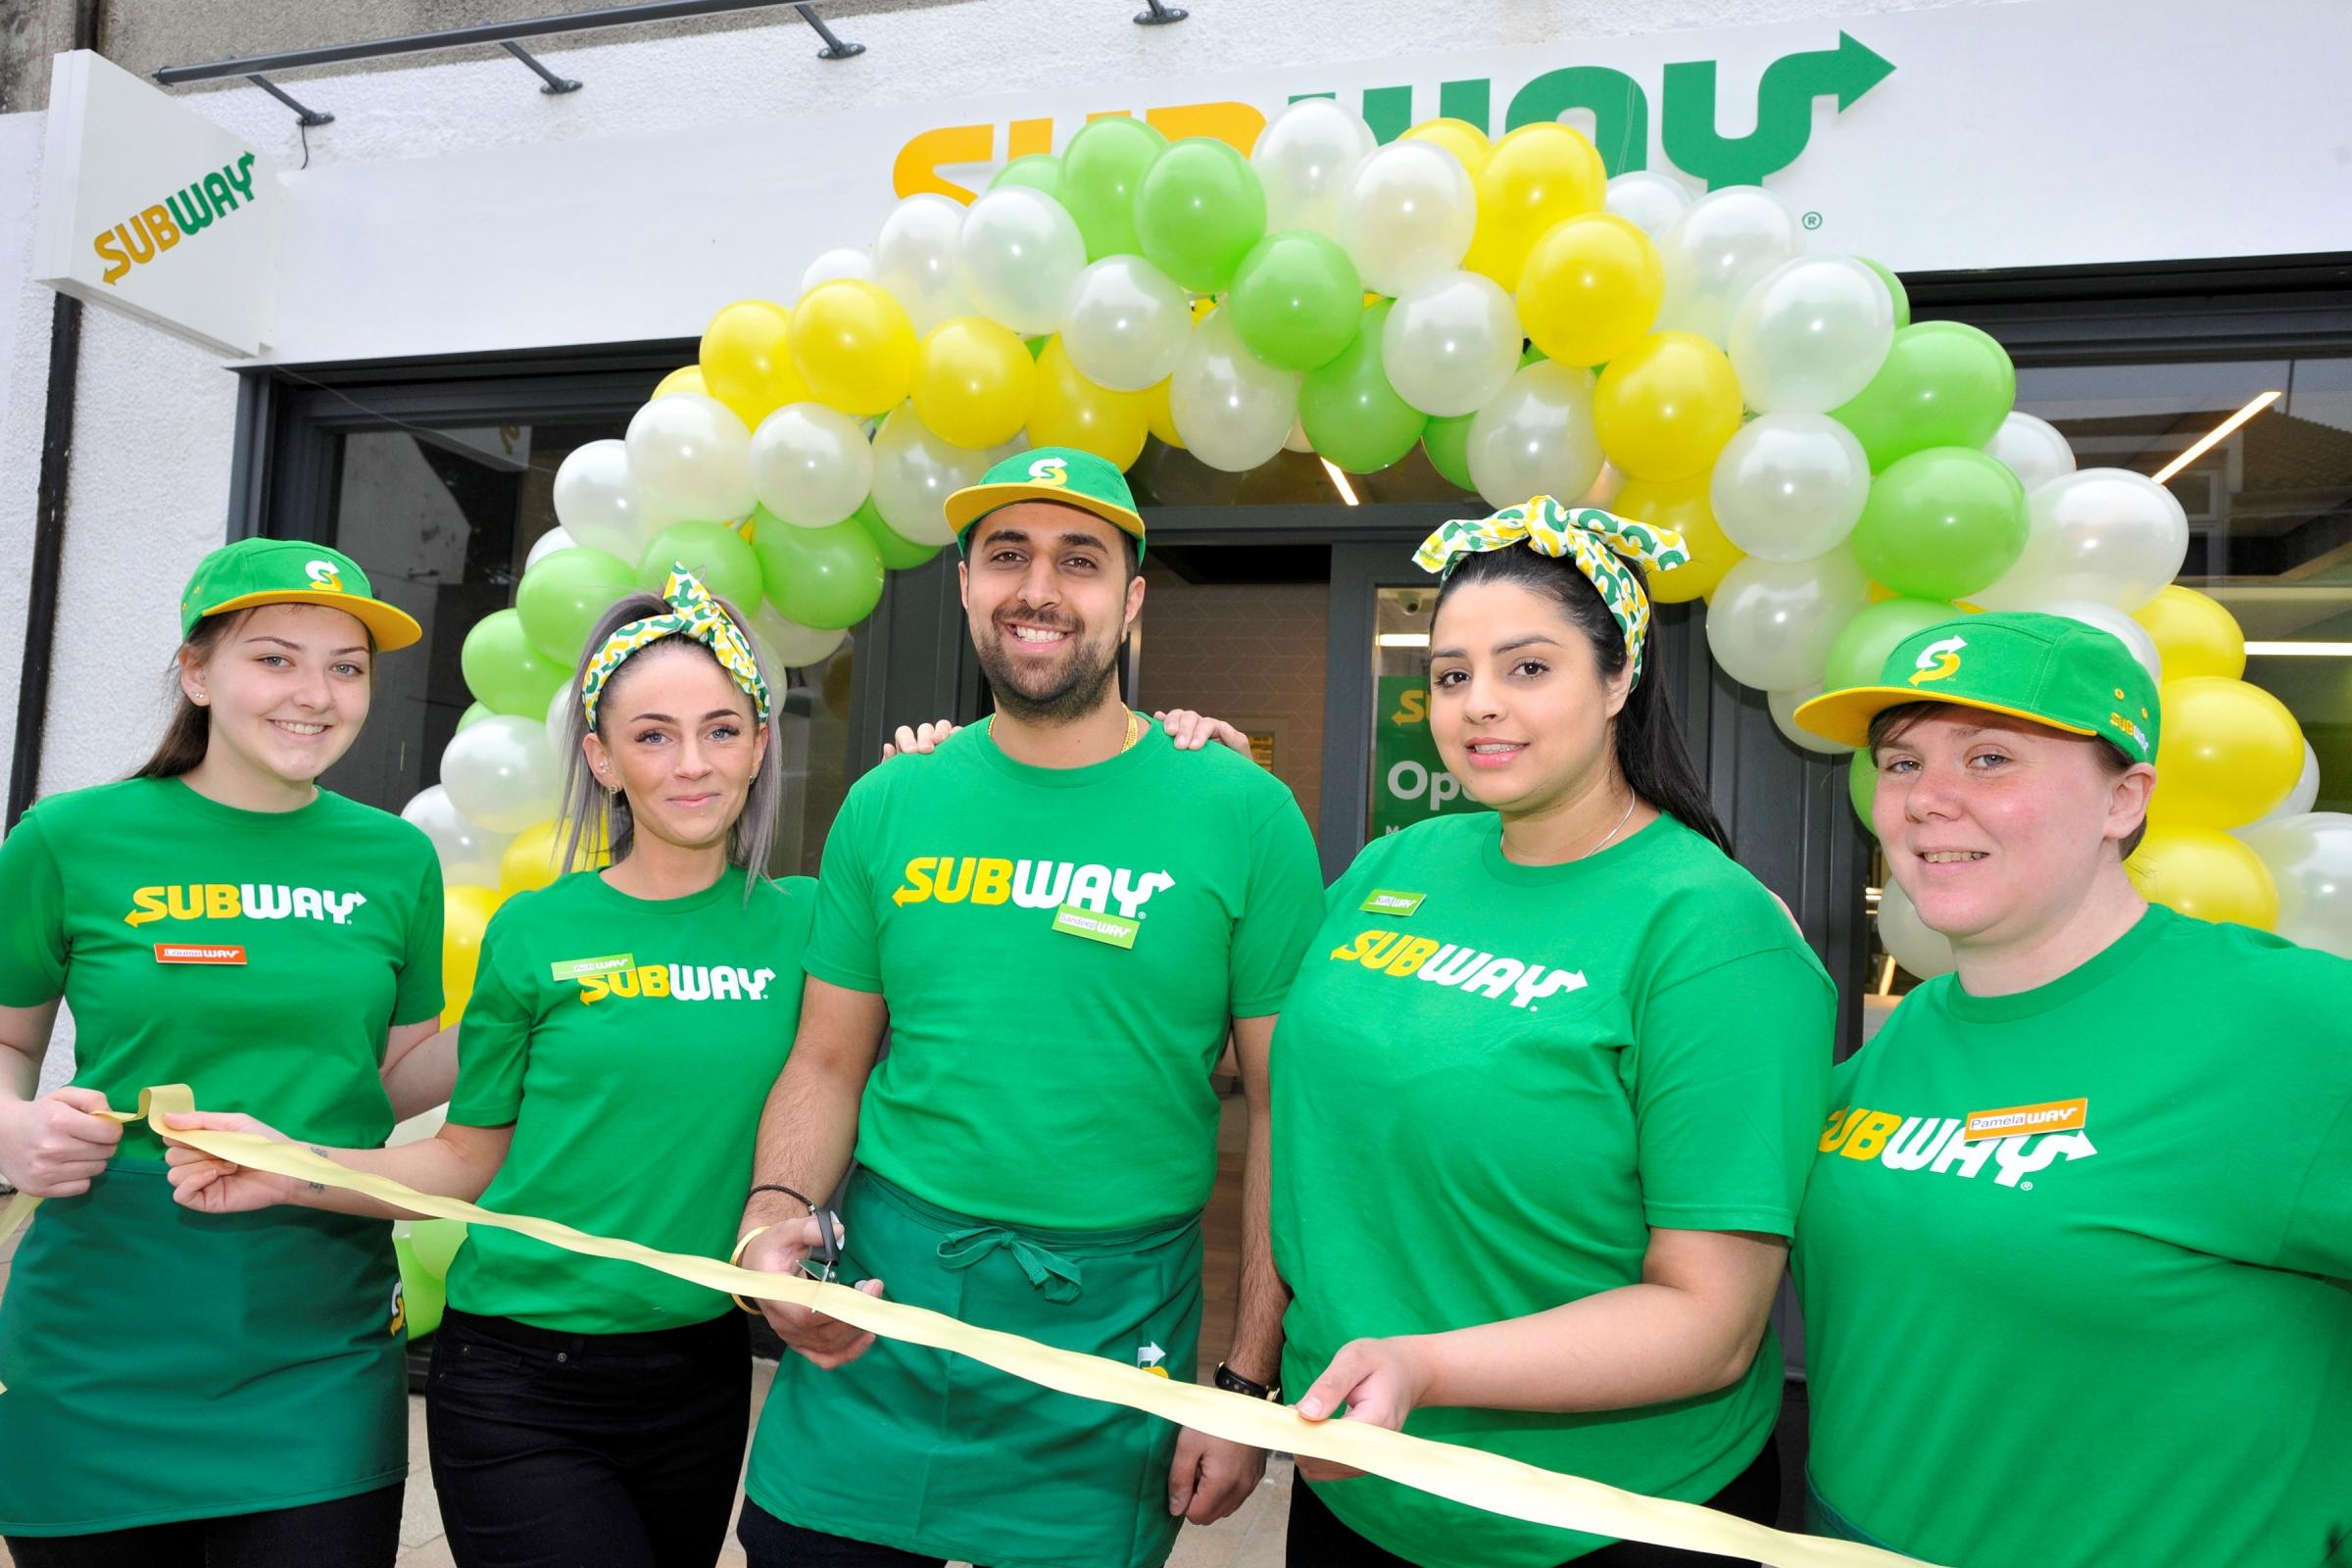 New Kilwinning Subway opens.